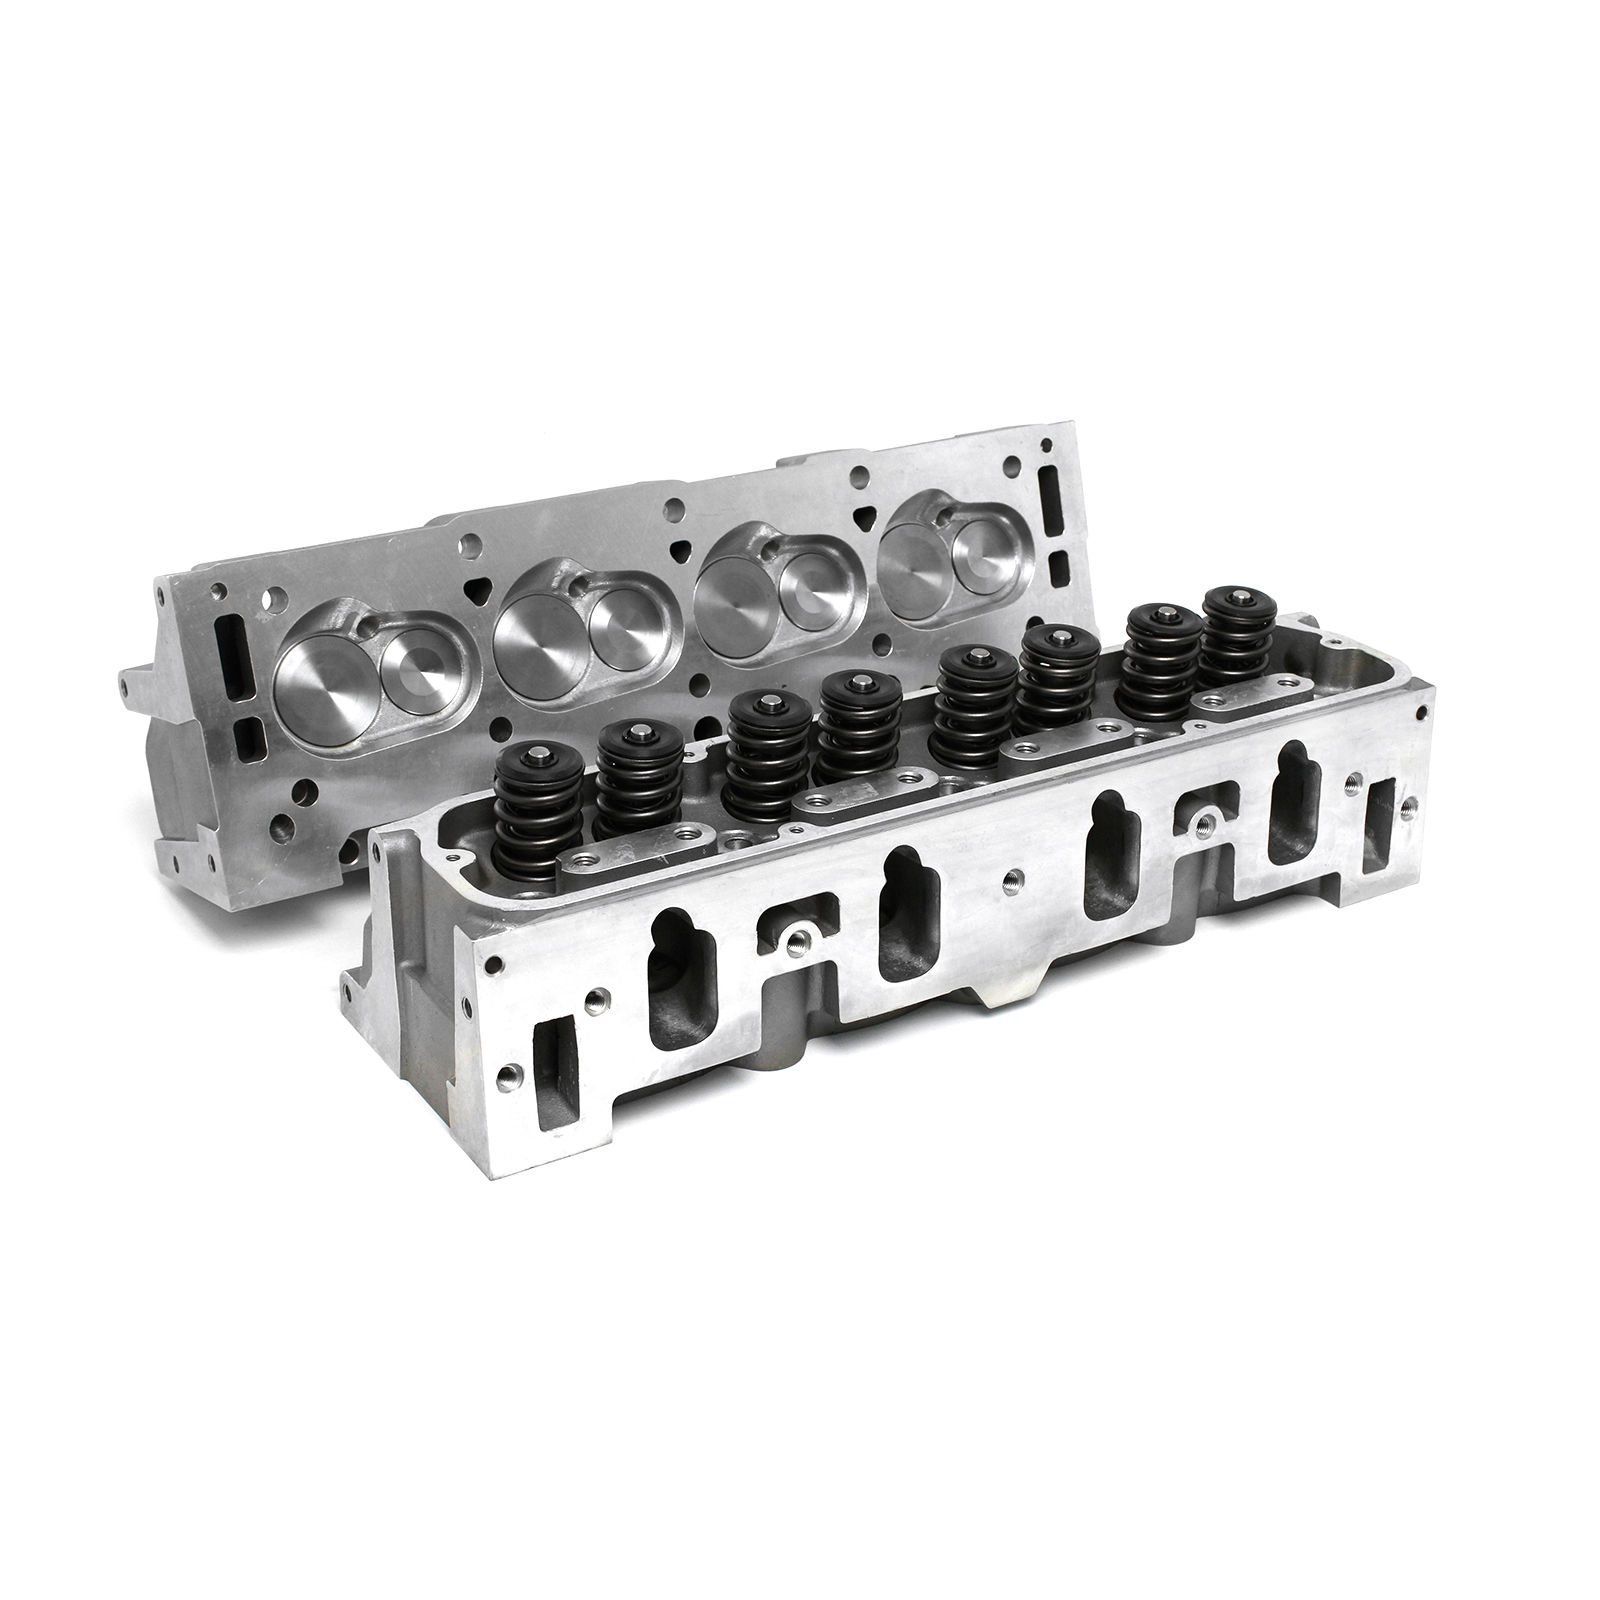 Holden-253-304-308-195cc-64cc-7-Hydr-FT-Complete-Aluminum-Cylinder-Heads